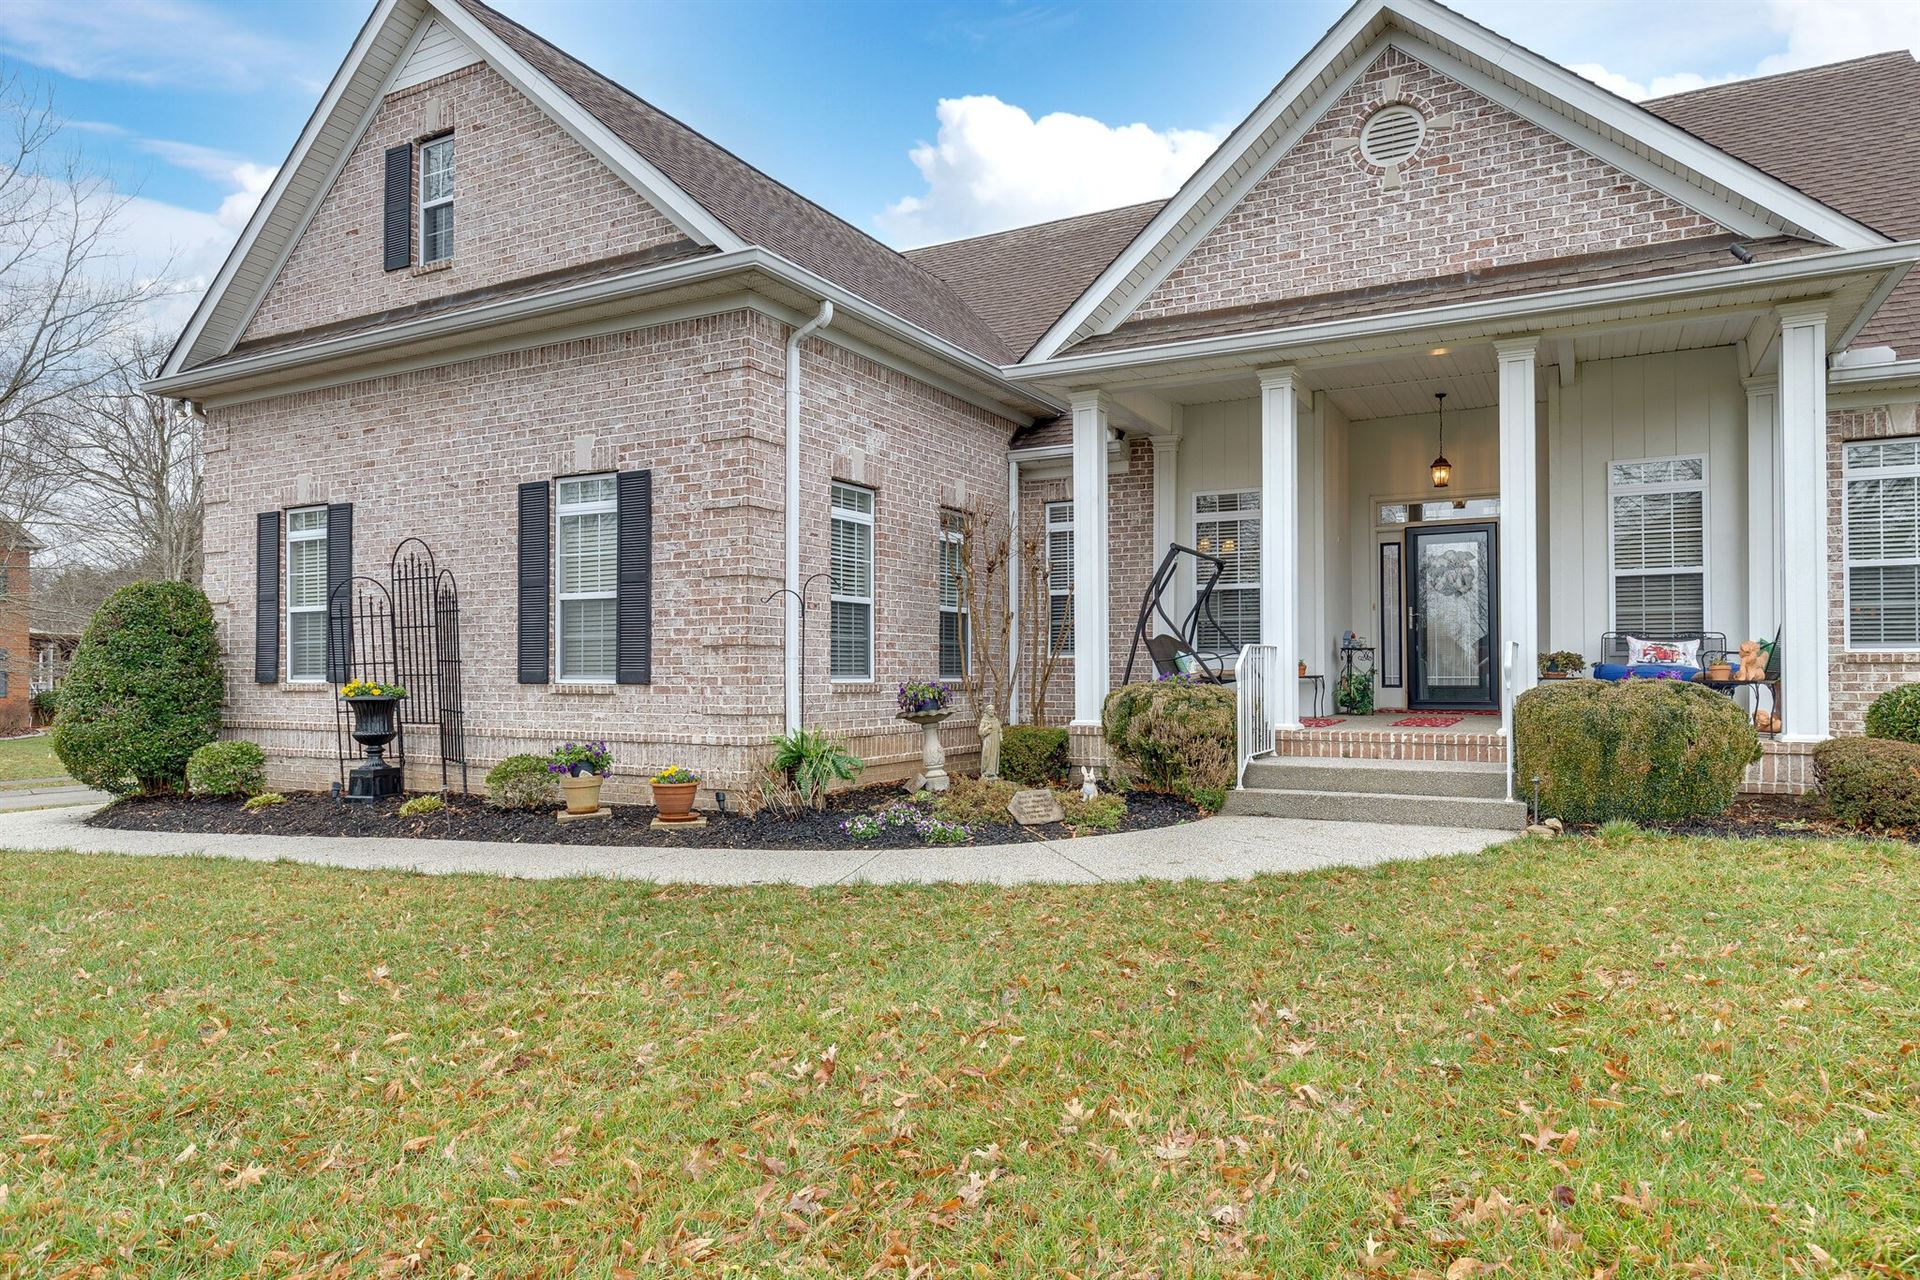 Photo of 1502 Beaumont Ter, Spring Hill, TN 37174 (MLS # 2232586)